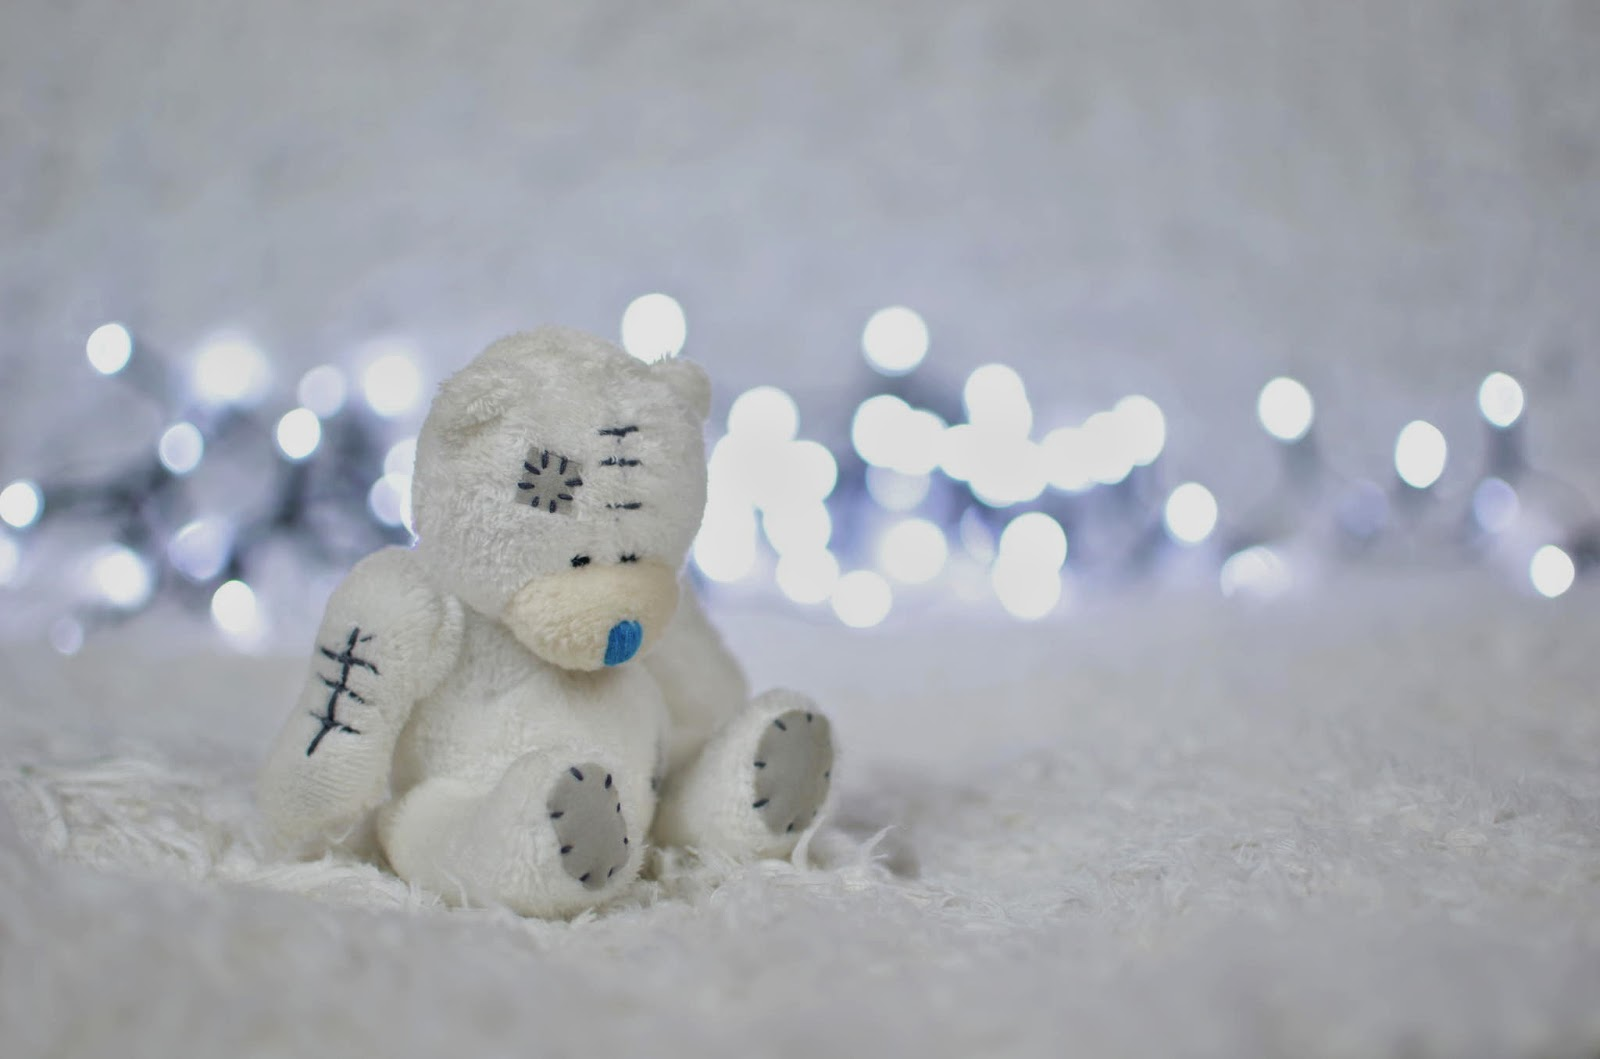 White-Teddy-Bear-sad-upset-image-resolution-2048x1356.jpg